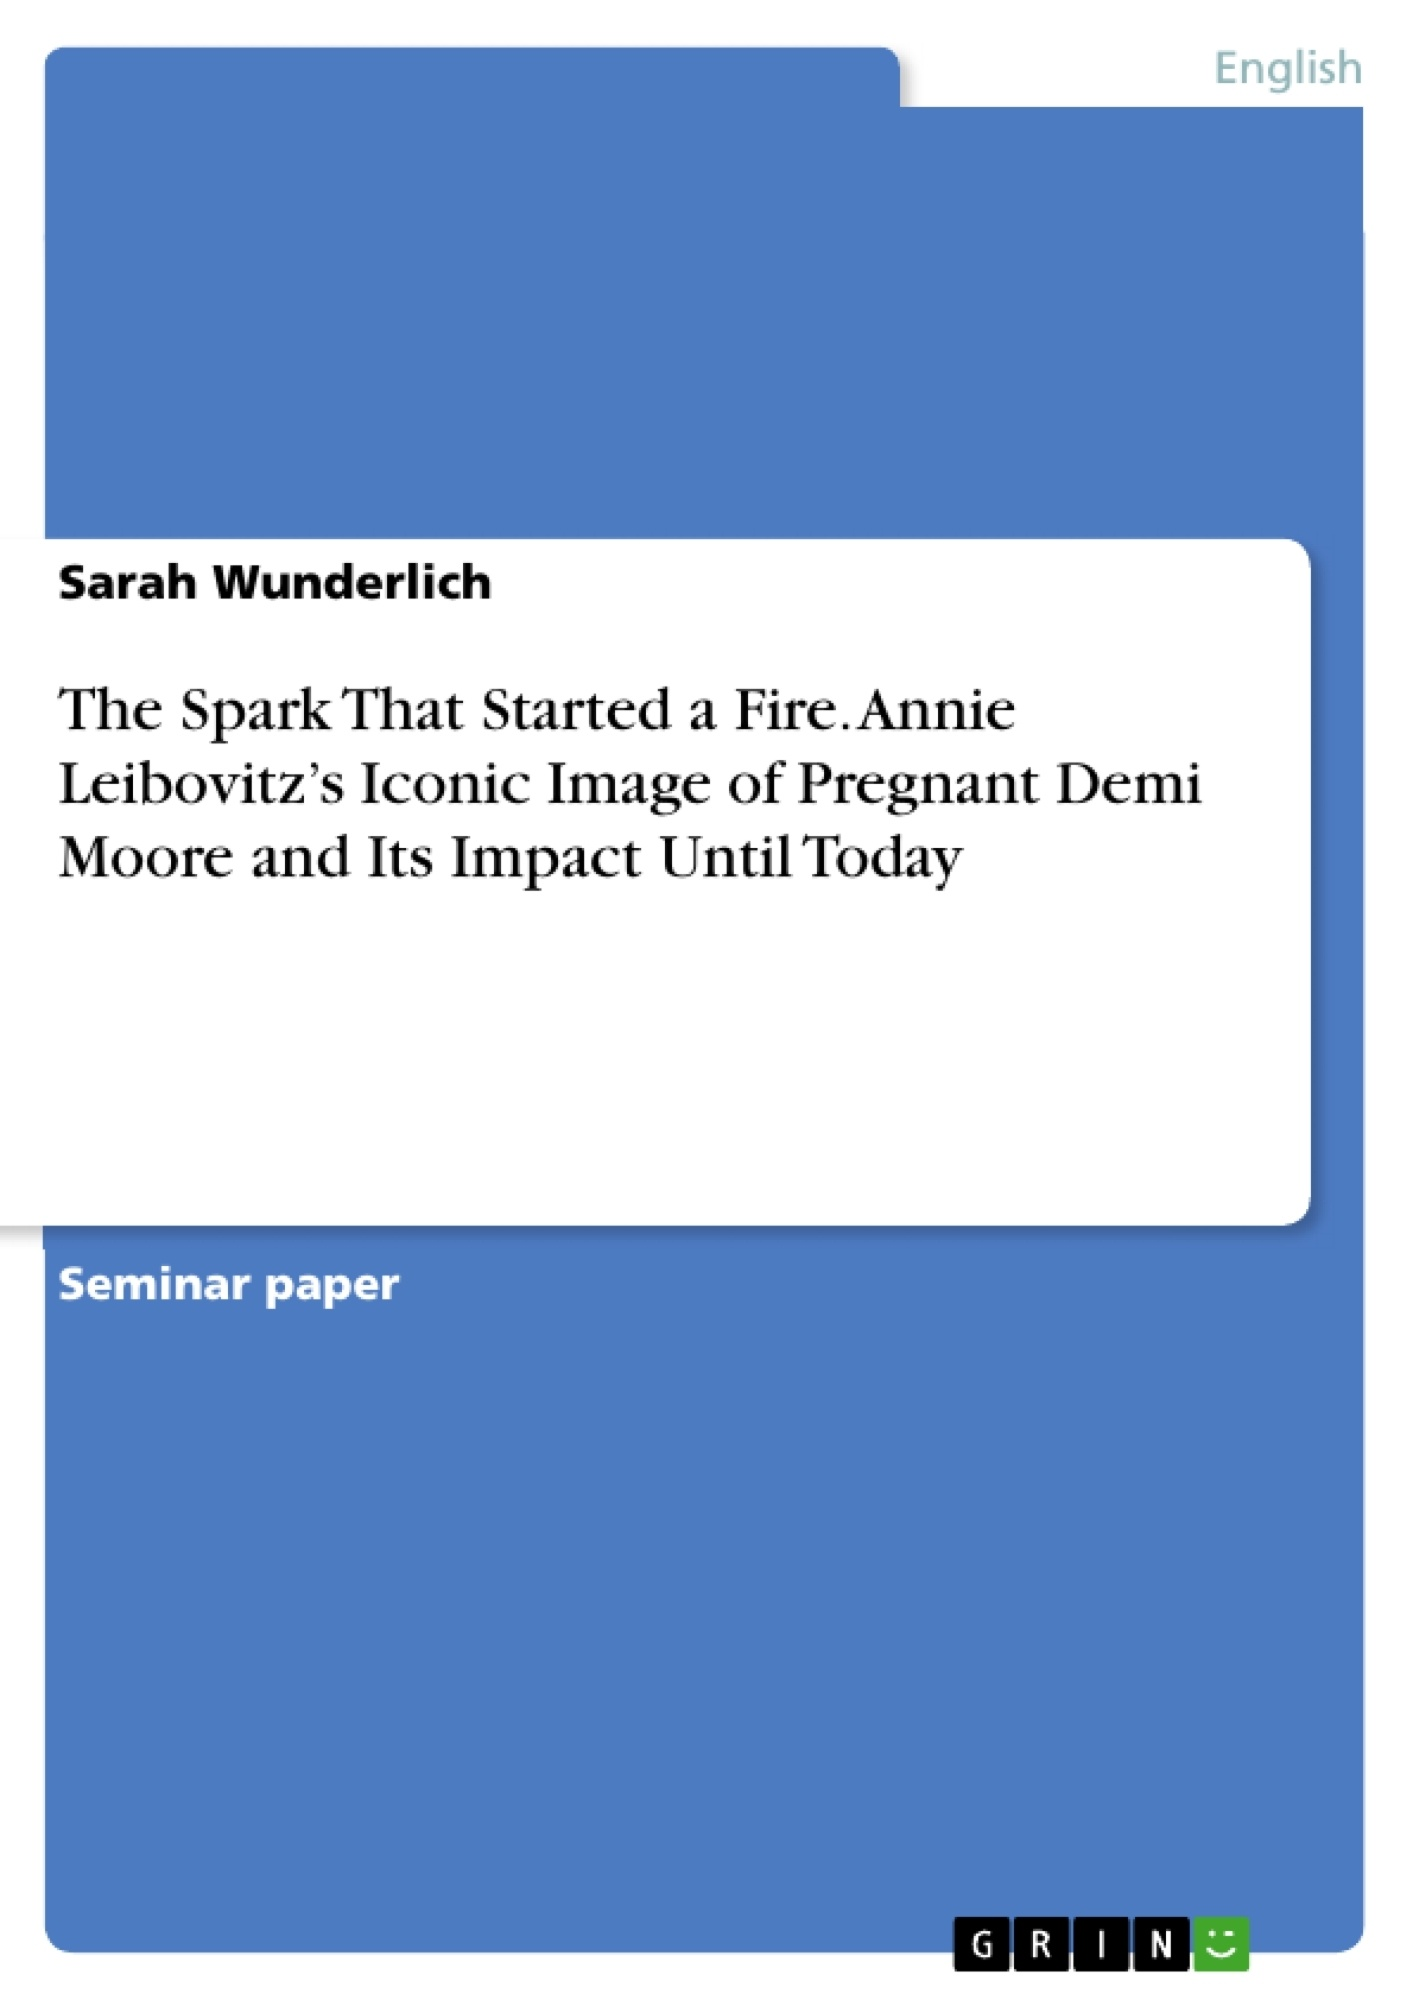 Title: The Spark That Started a Fire. Annie Leibovitz's Iconic Image of Pregnant Demi Moore and Its Impact Until Today